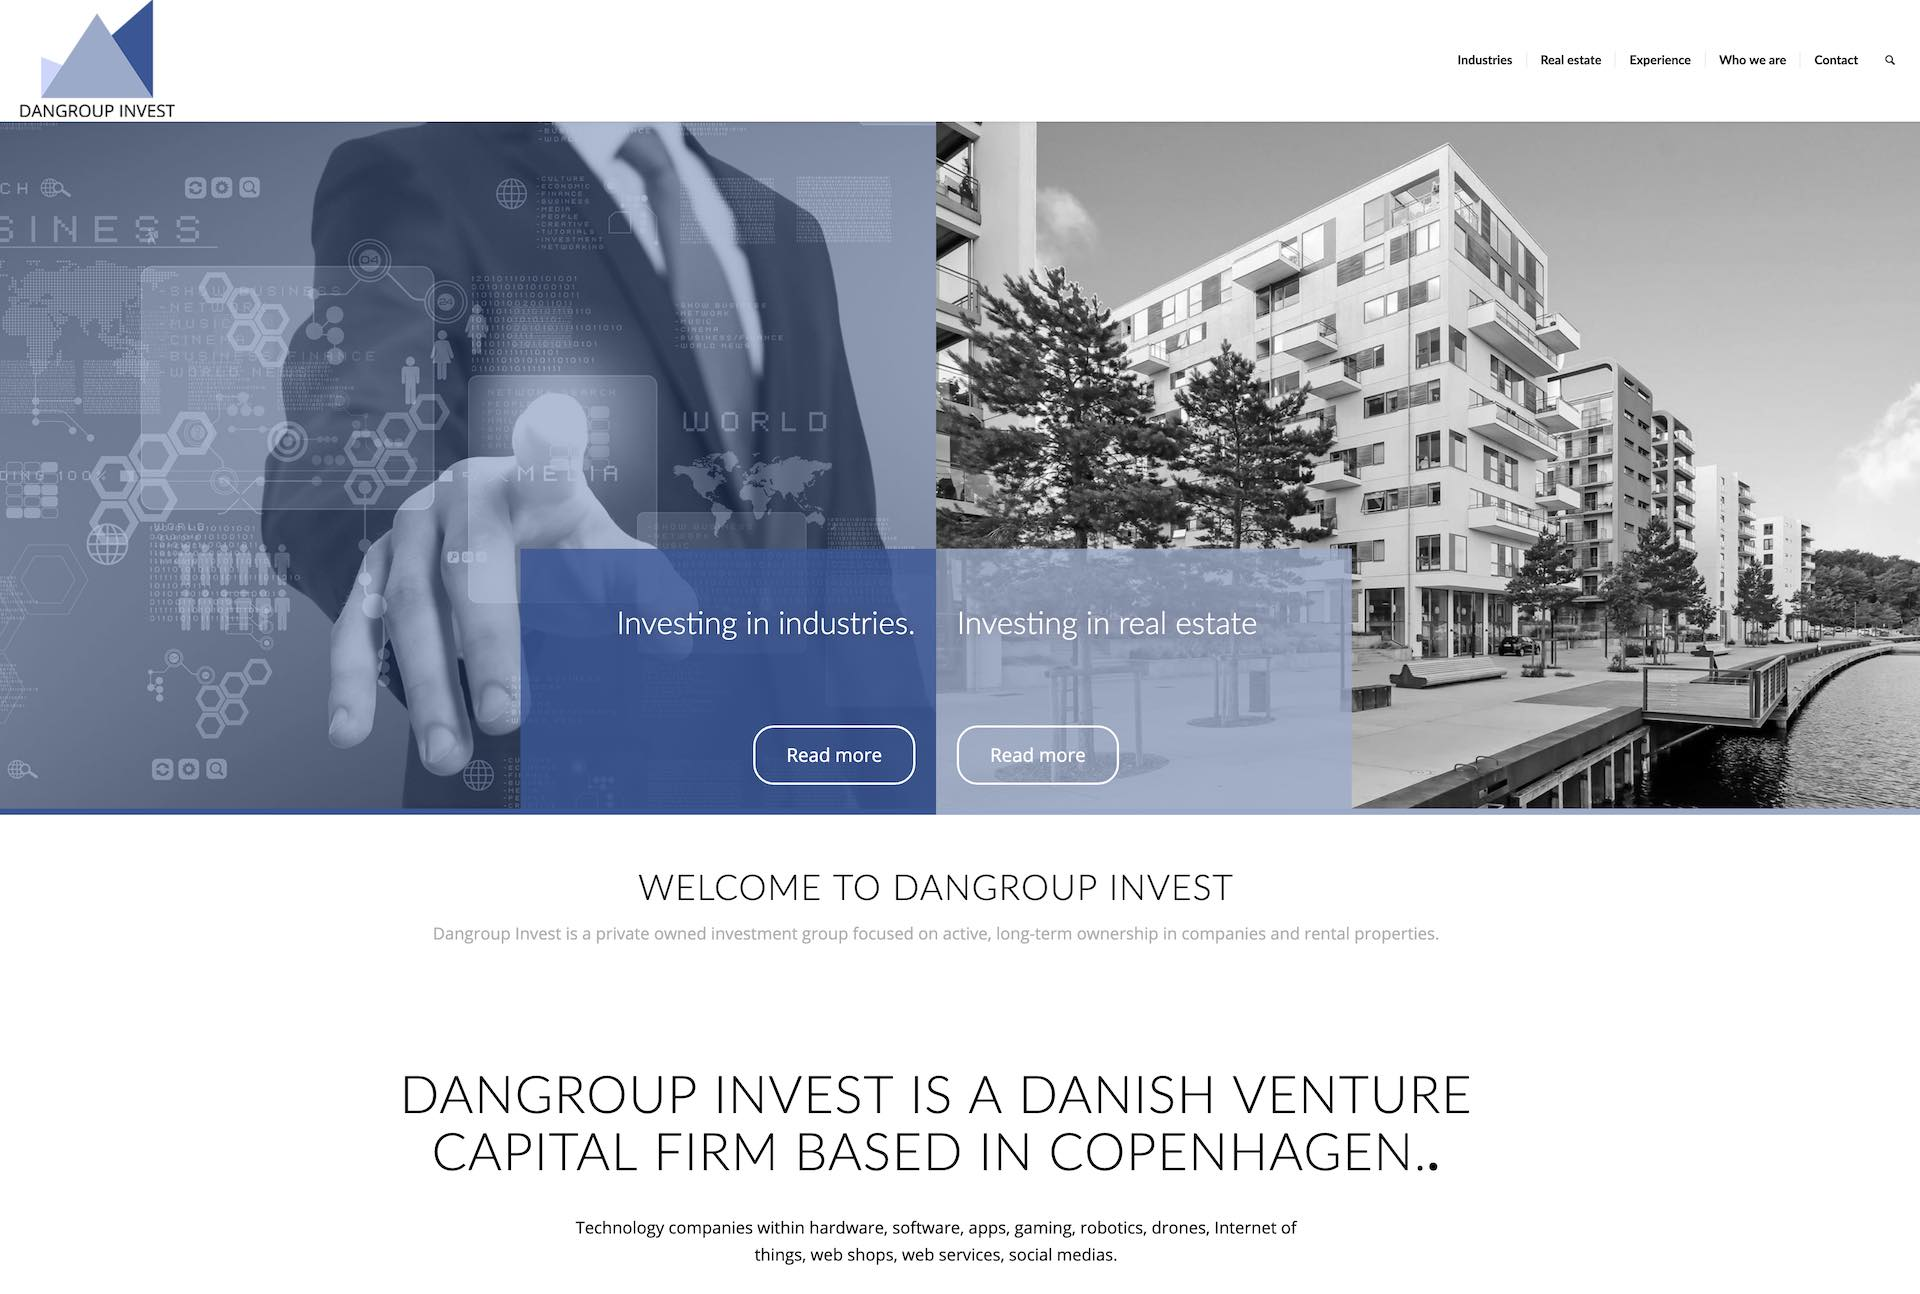 Dangroup Invest